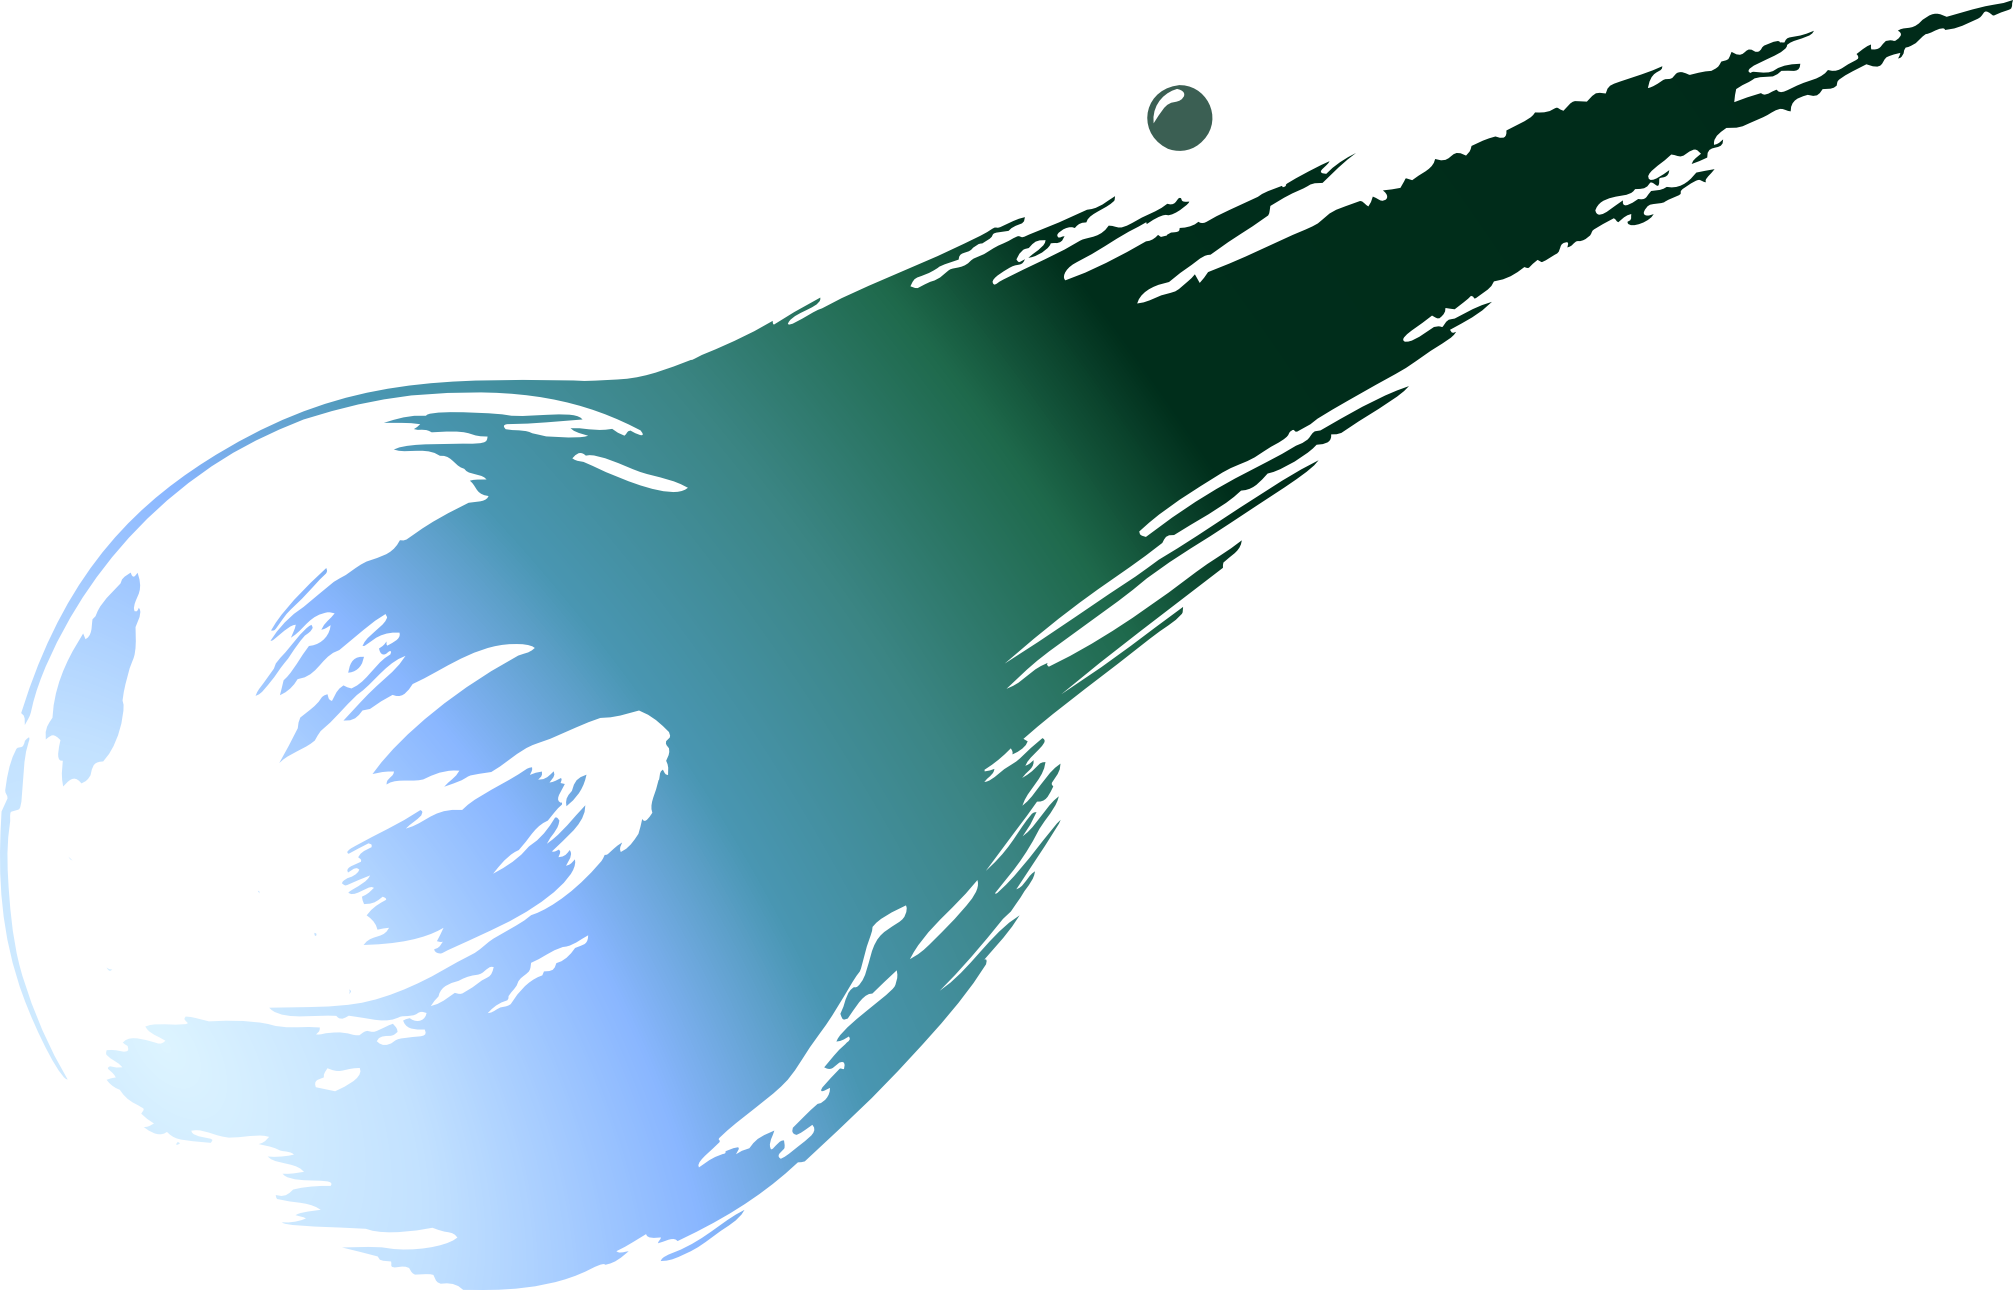 Scheme vector wallpaper. Final fantasy vii logo